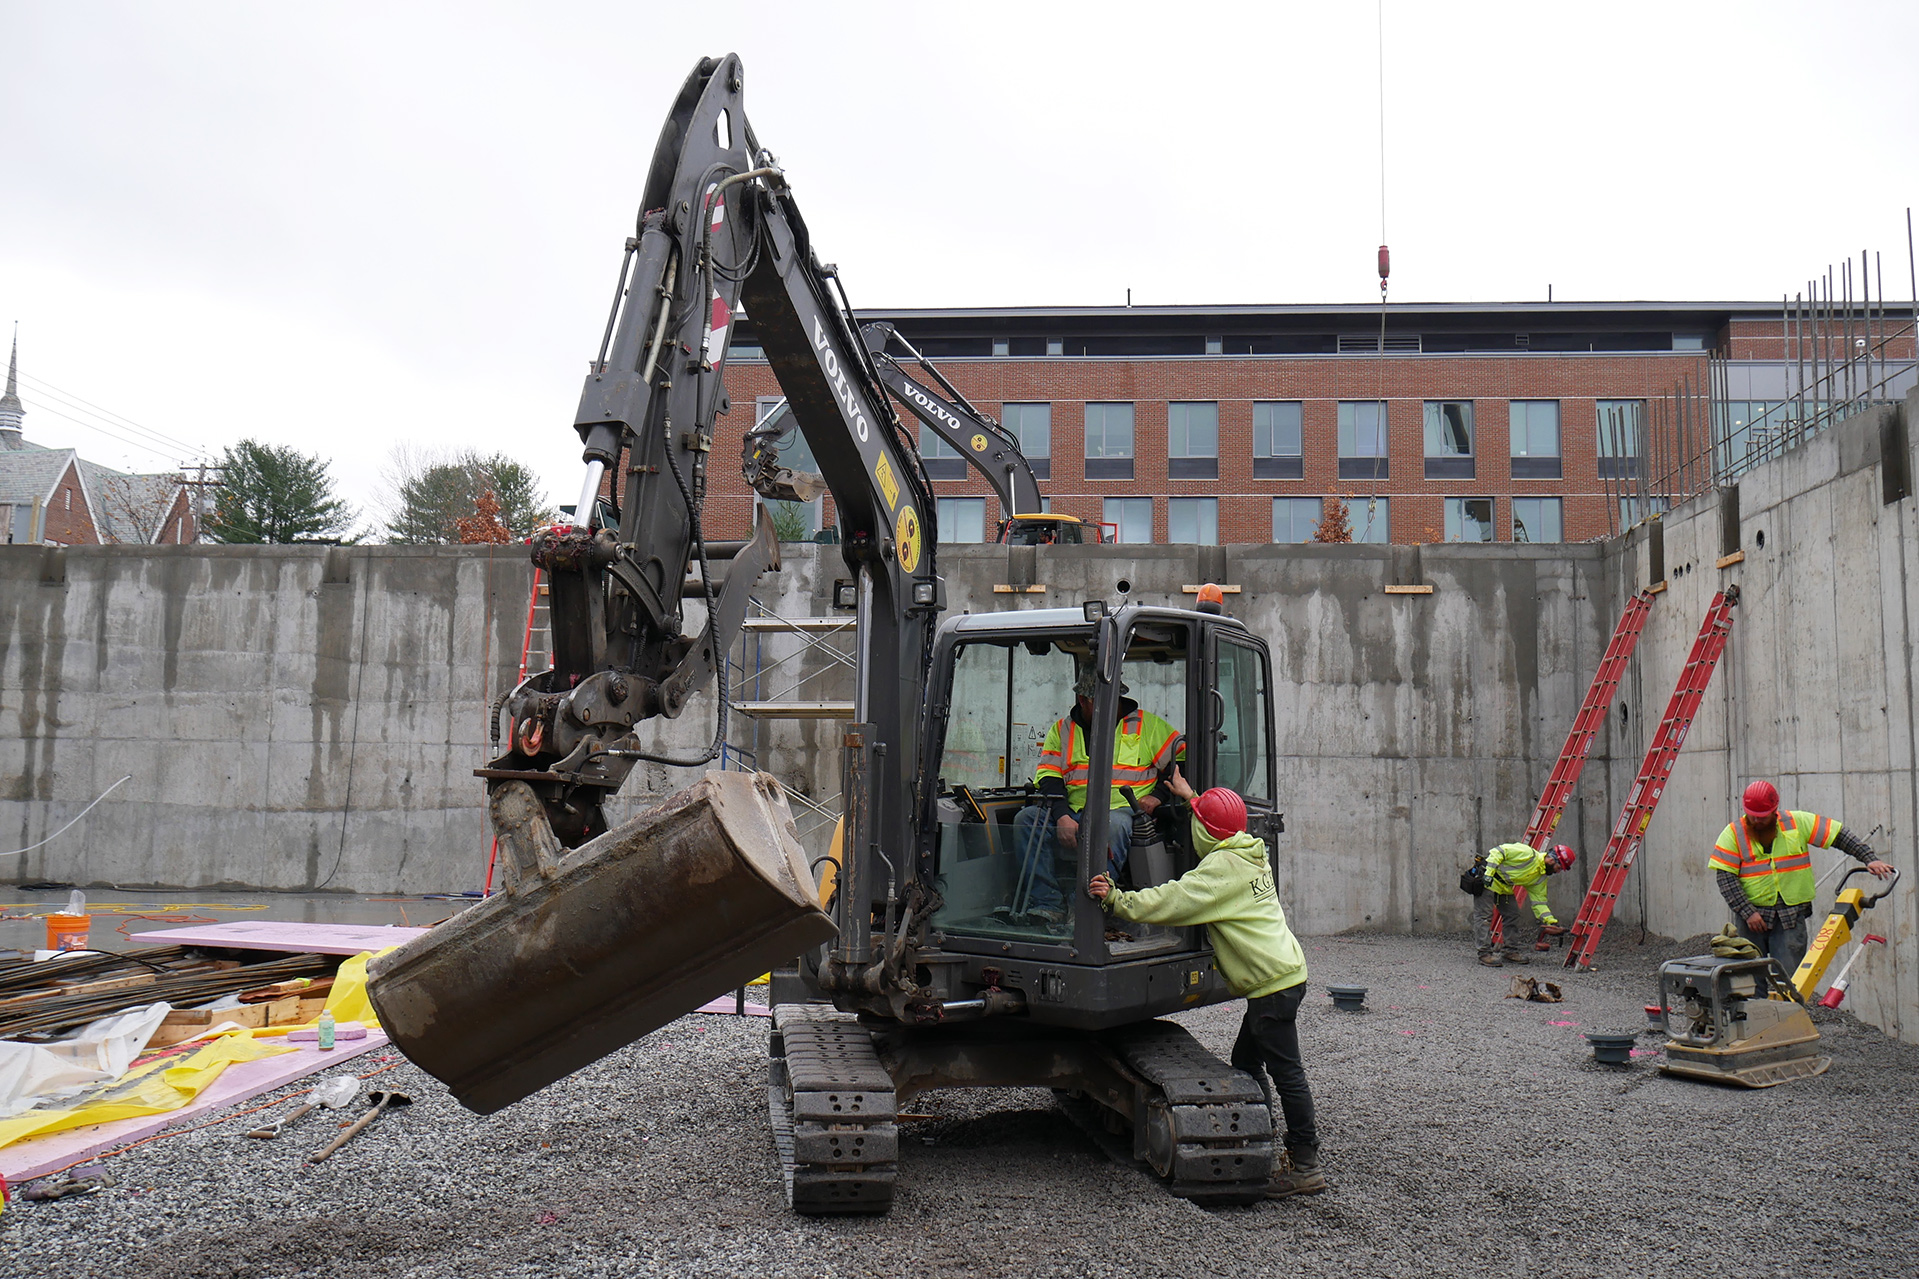 A scene in the Bonney Science Center basement: At center, an excavator operator and a colleague consult while a worker (far right) tends to his compactor and a steelworker (right rear) gathers his tools after working in the beam pocket at the top of the ladder. Chu Hall appears in the background. (Doug Hubley/Bates College)